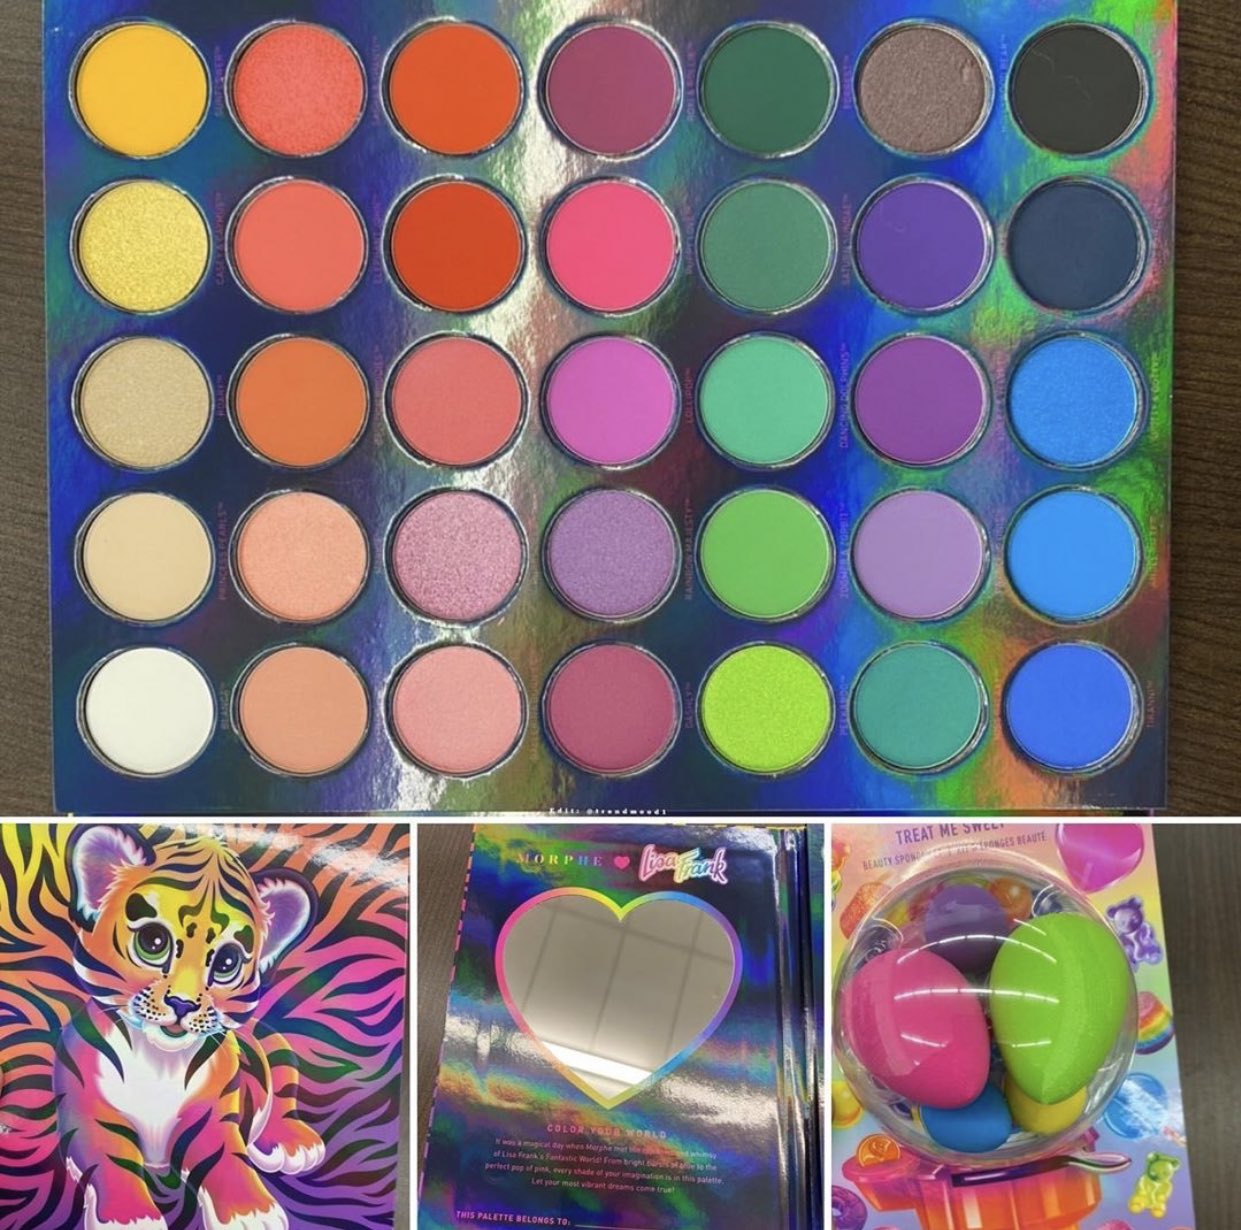 Trendmood On Twitter Revealed Spotted In Stores Omg A New Iconic Collaboration Morphebrushes X Lisafrank Morphexlisafrank Includes A Full Collection 1 Eyeshadowpalette 35b 30 2 Treat Me Sweet We leaned on morphe for their cosmetic product expertise, and they relied on us to take the design. trendmood on twitter revealed